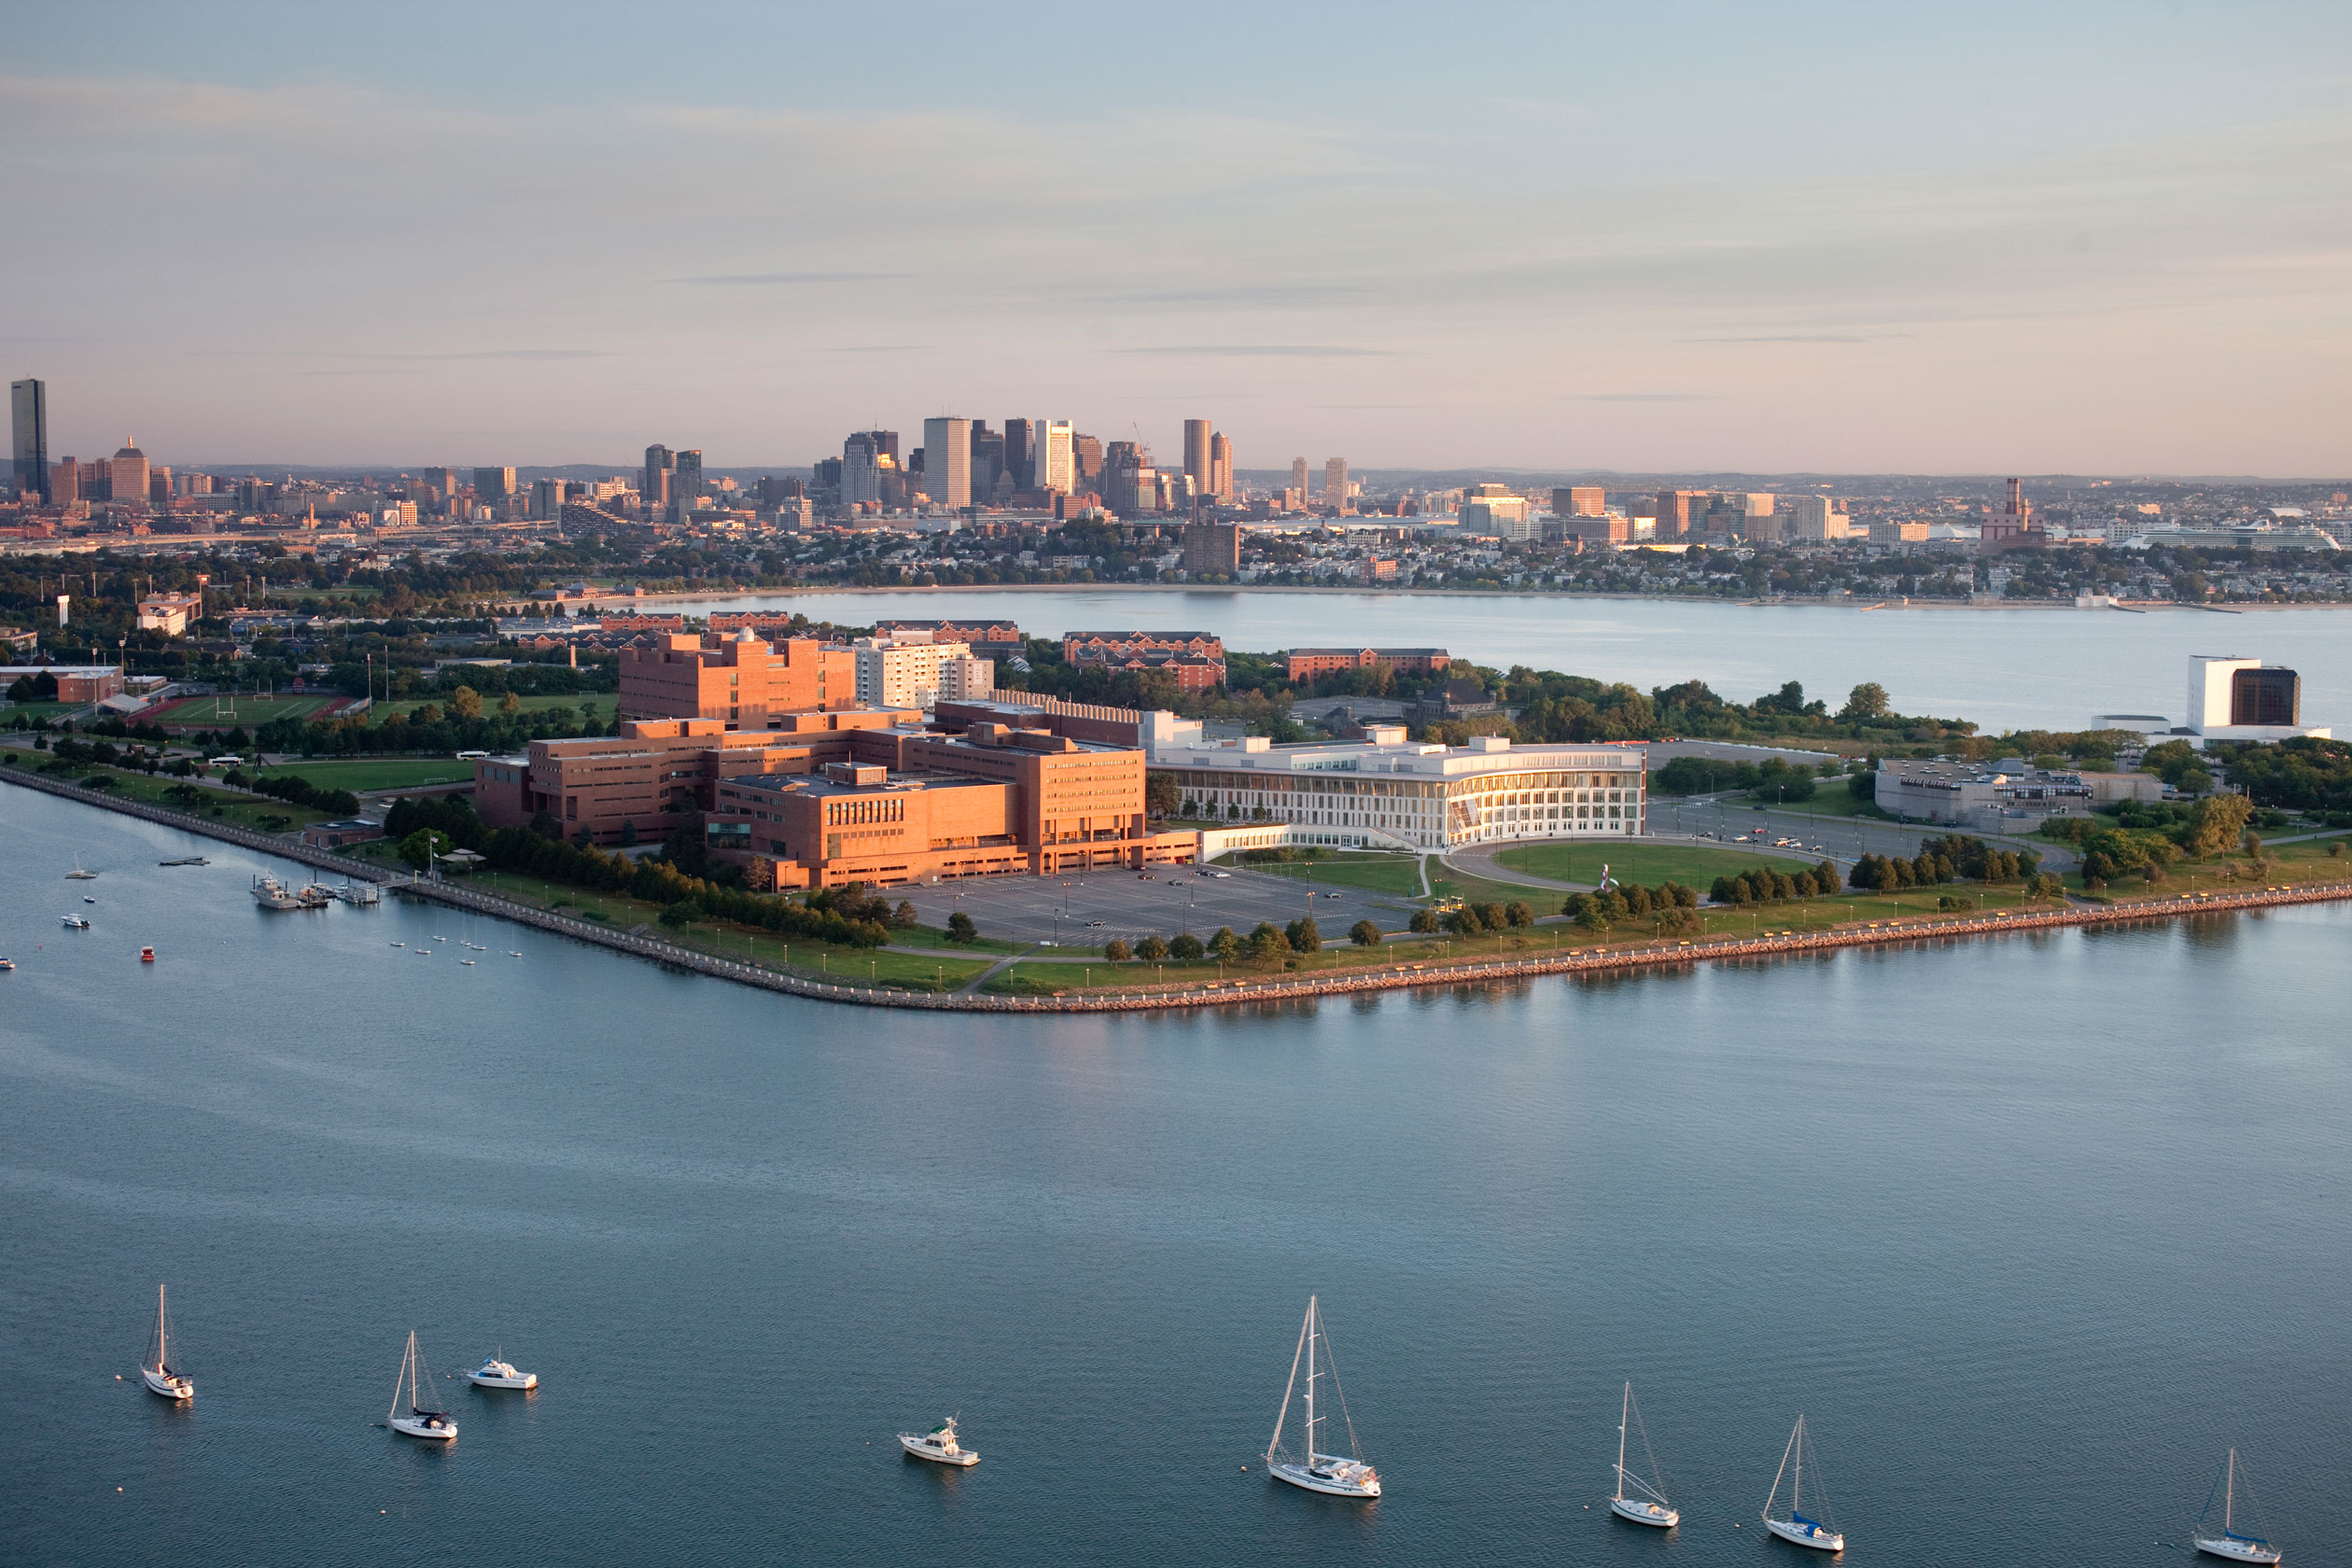 aerial view of the University of Massachusetts Boston campus